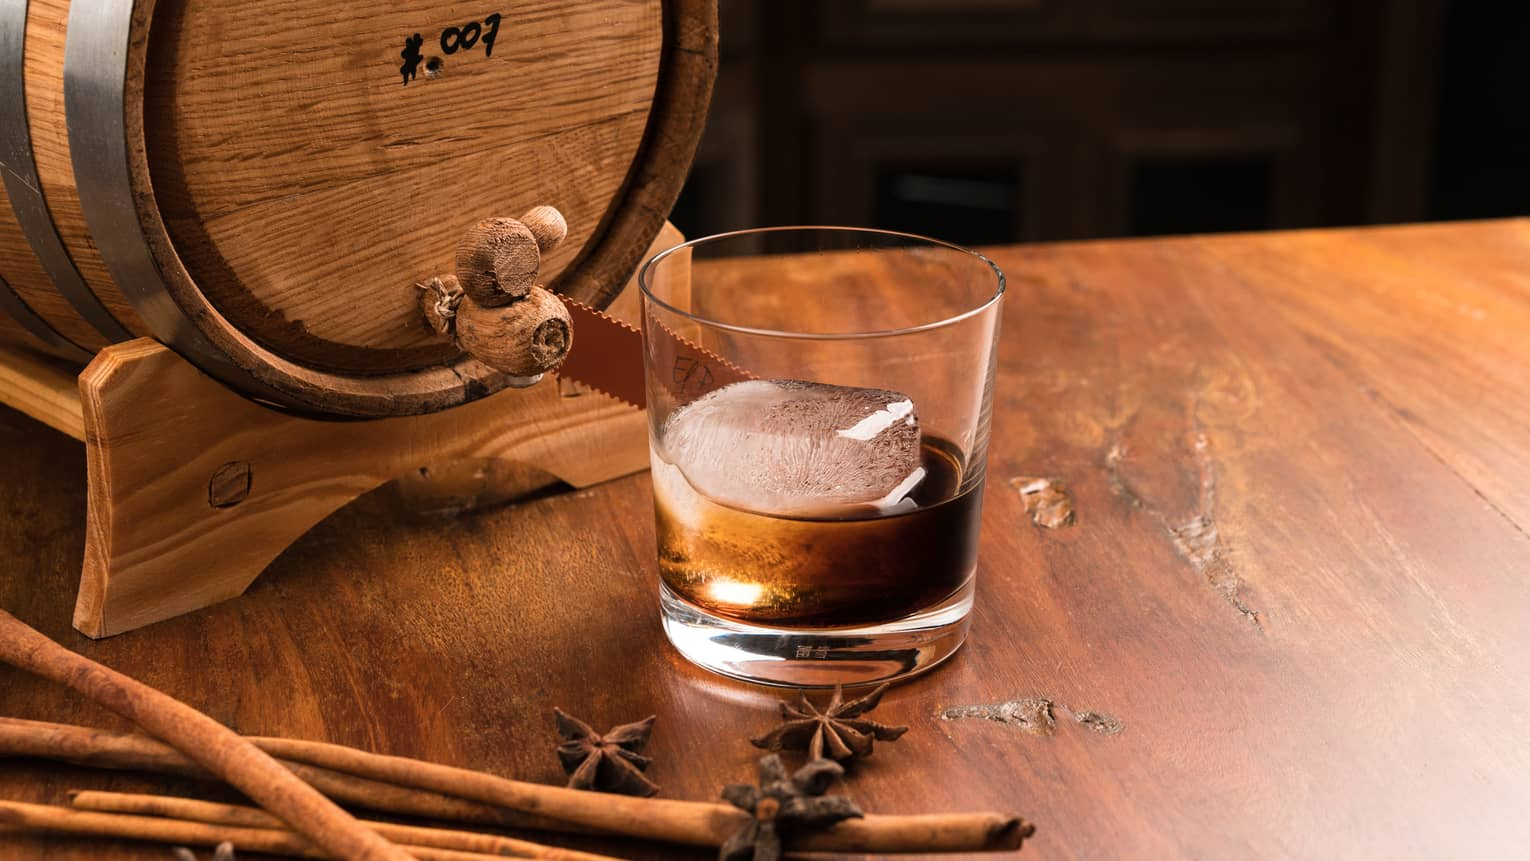 Rock glass with large ice cube, ounce of dark rum in front of small wood barrel on bar